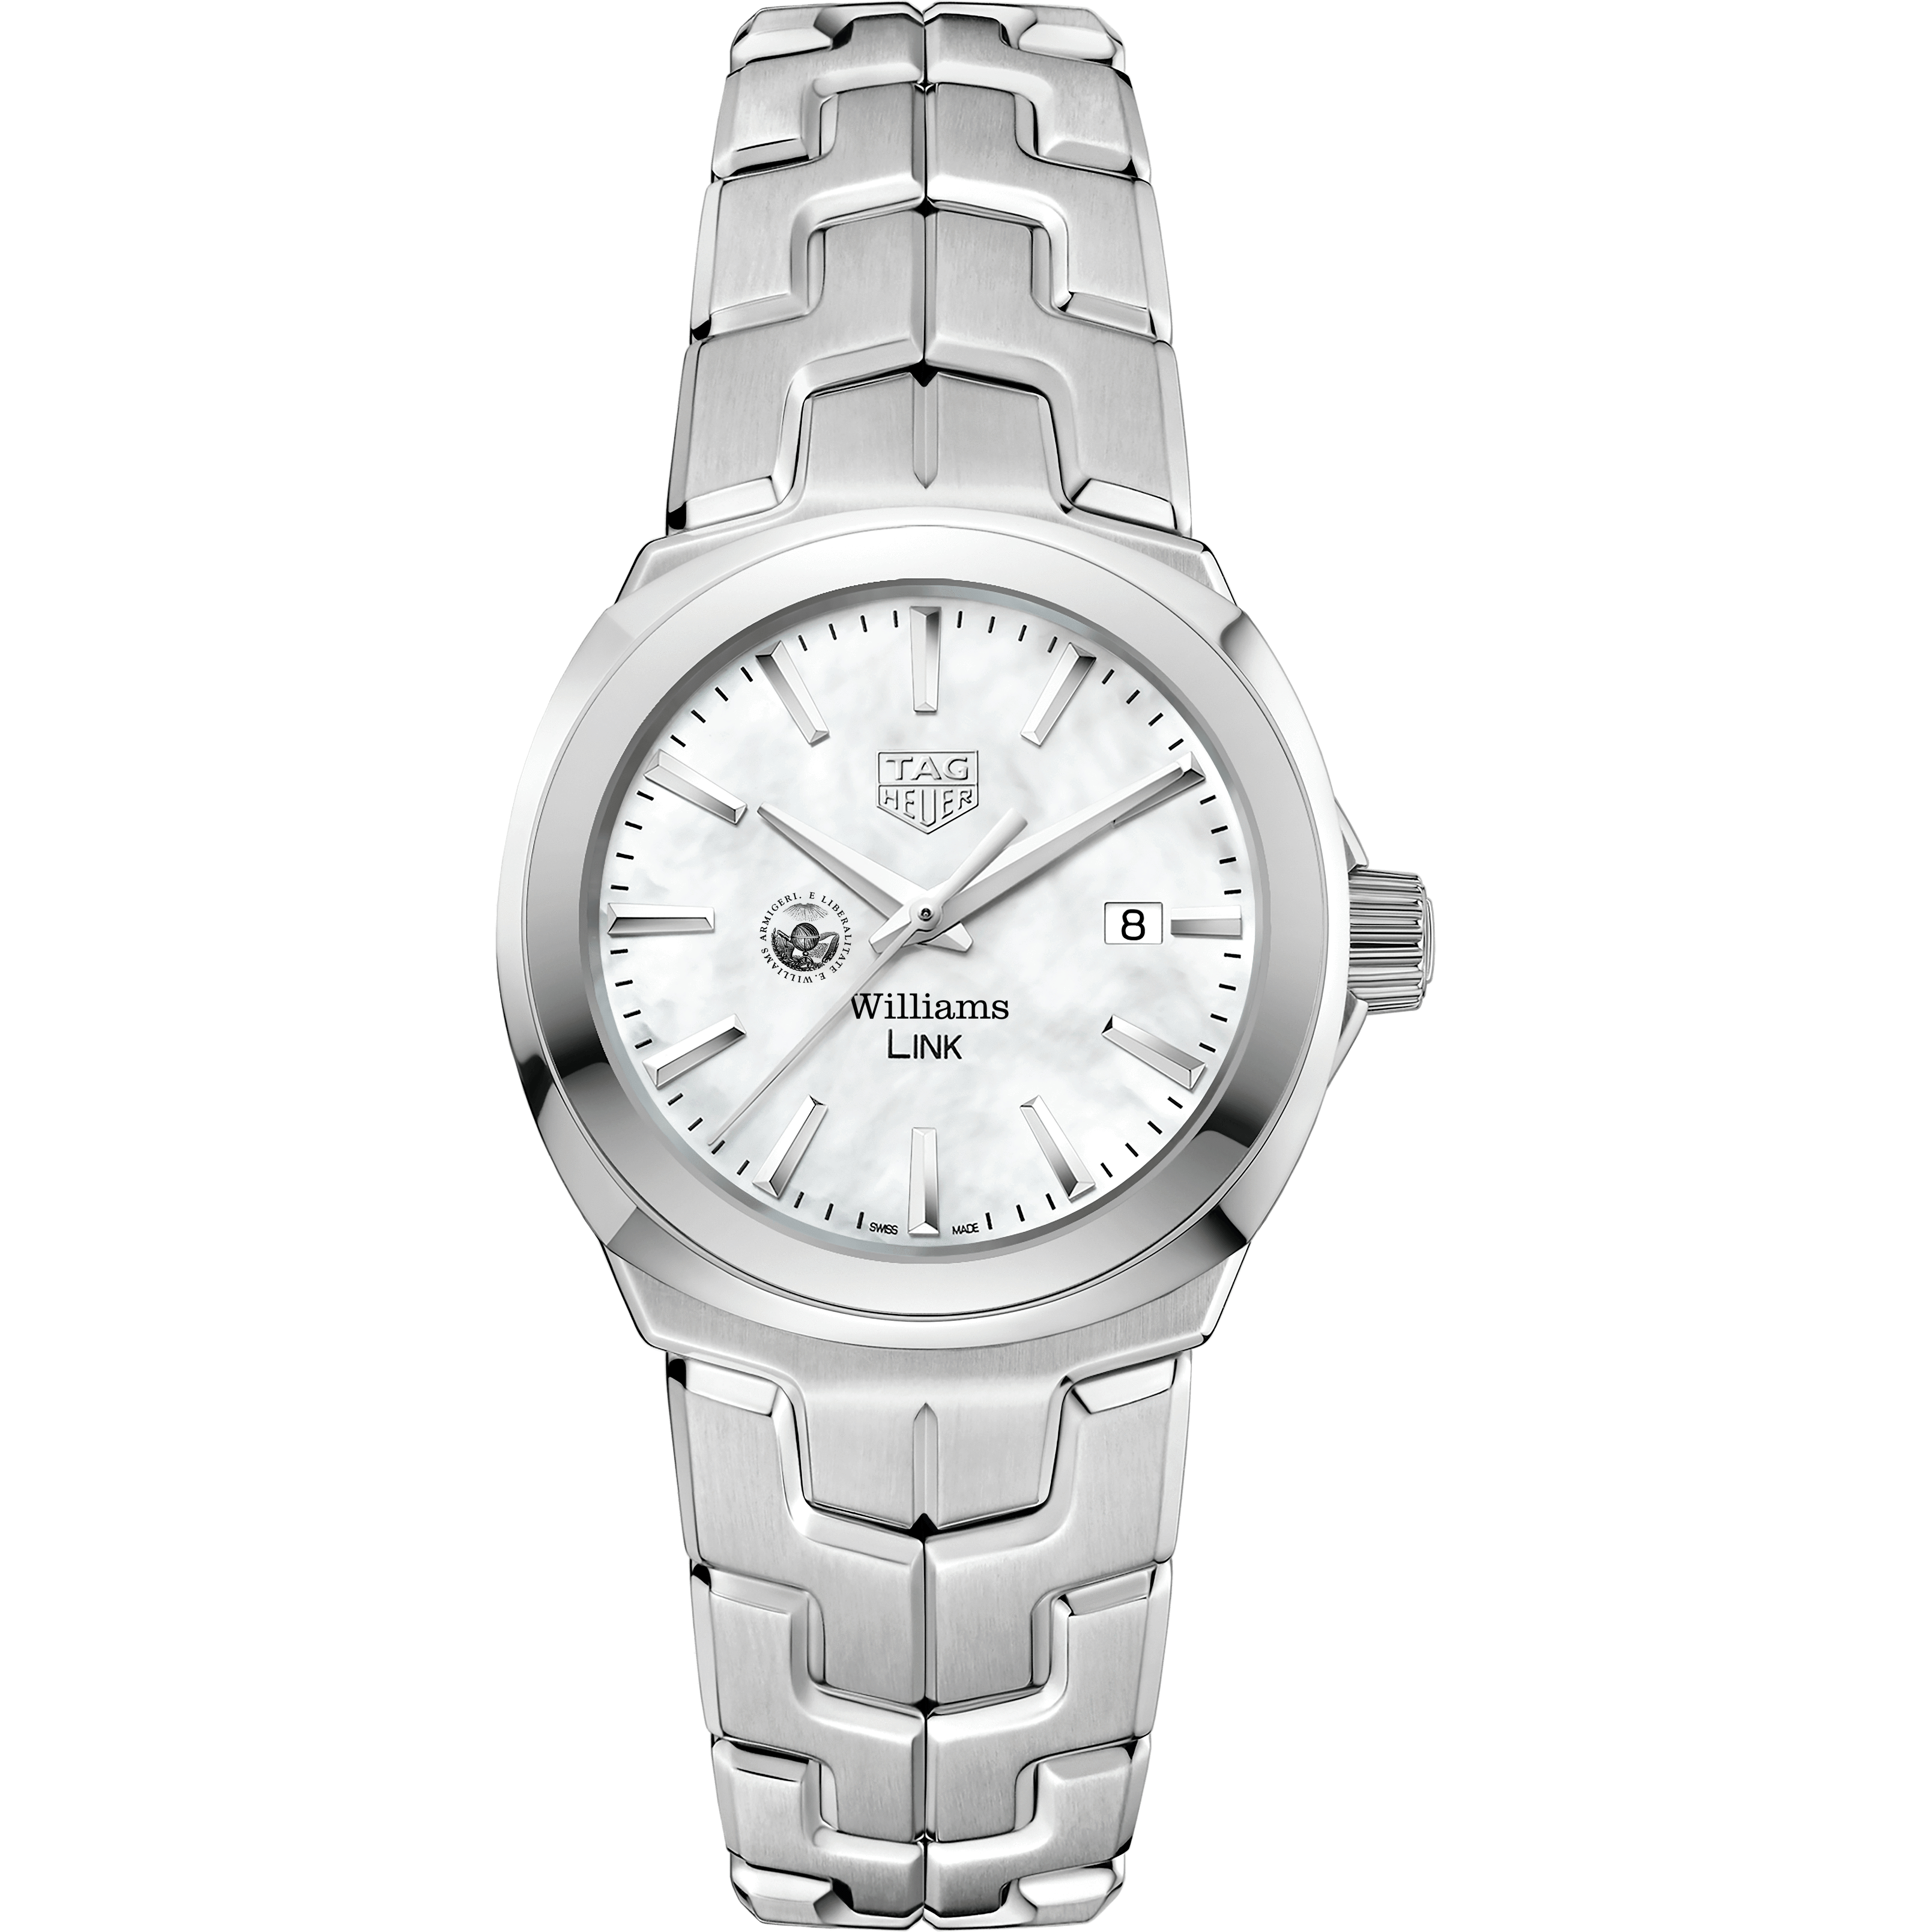 Williams College TAG Heuer LINK for Women - Image 2